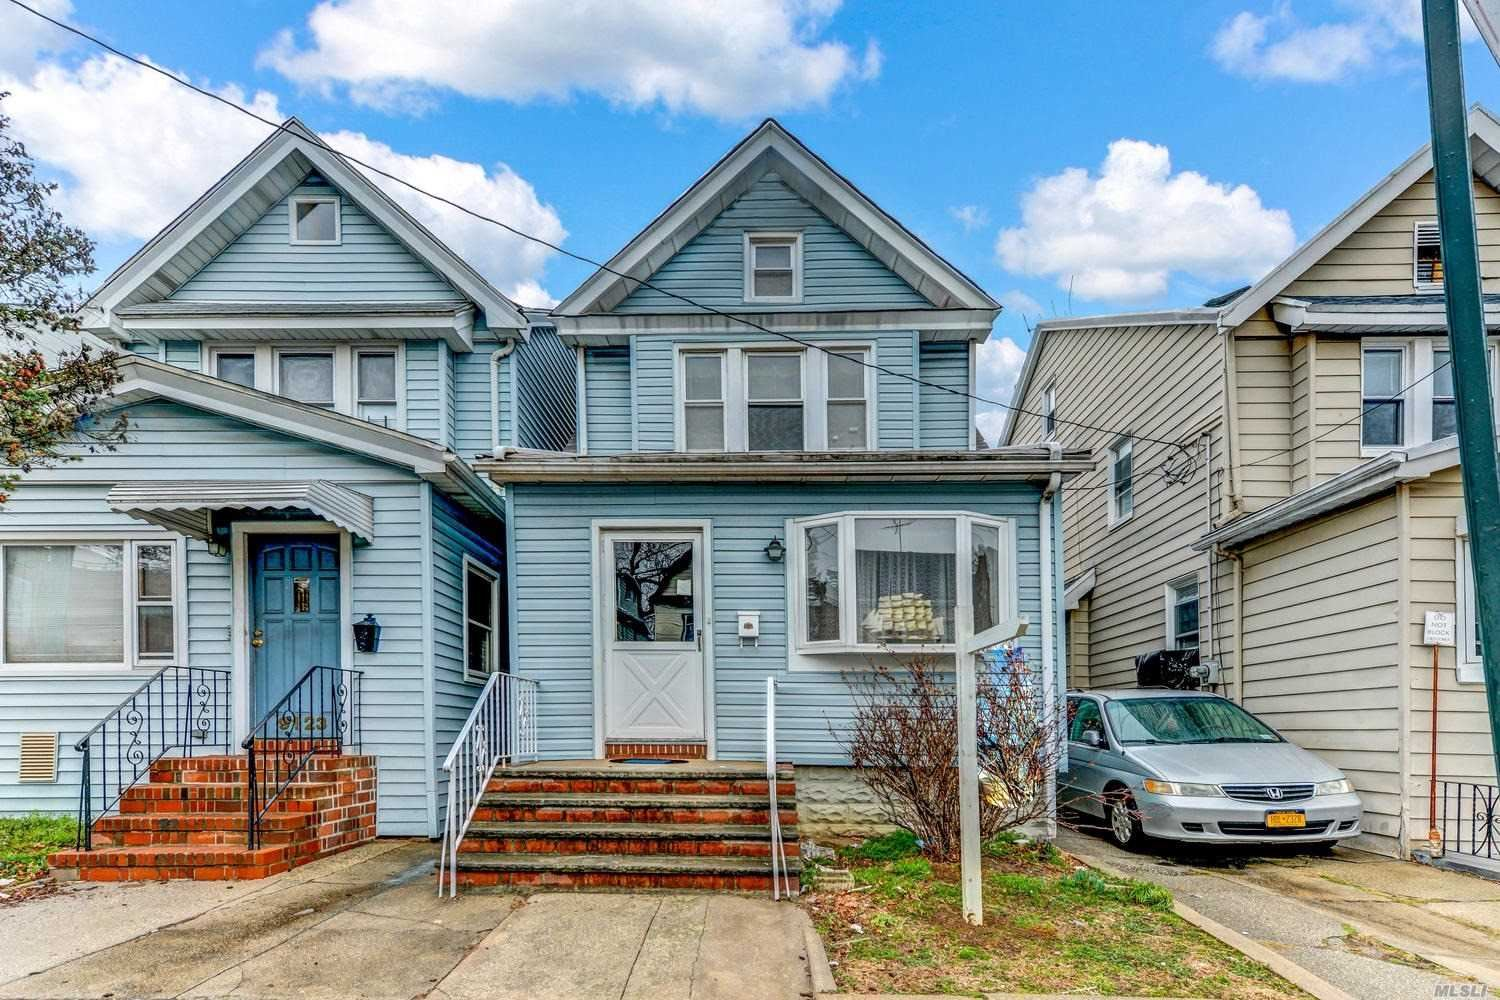 91-25 88th Rd, Woodhaven, NY 11421 - MLS#: 3203423